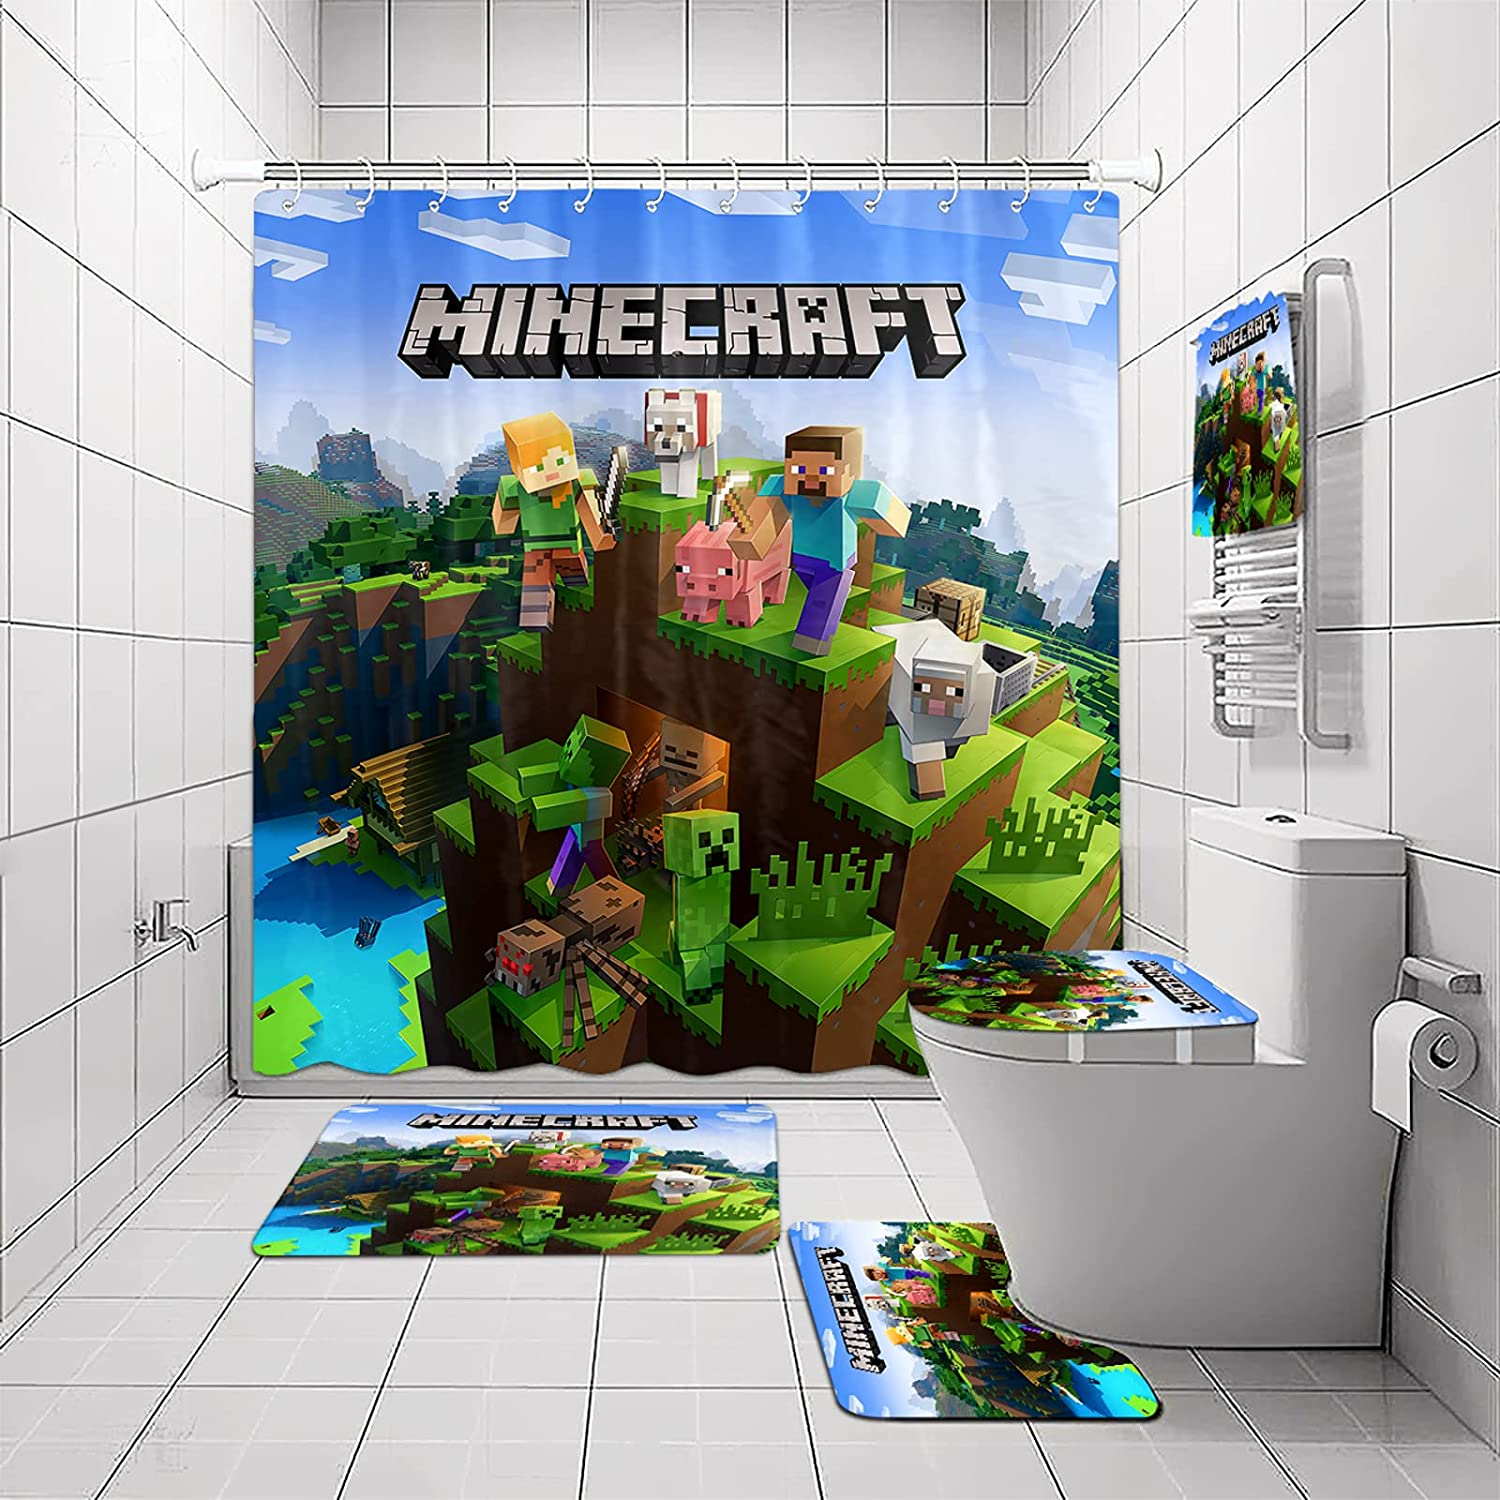 Game Shower Curtain Sets with Non-Slip Lid Max 43% OFF SEAL limited product Rug Cover Toilet and